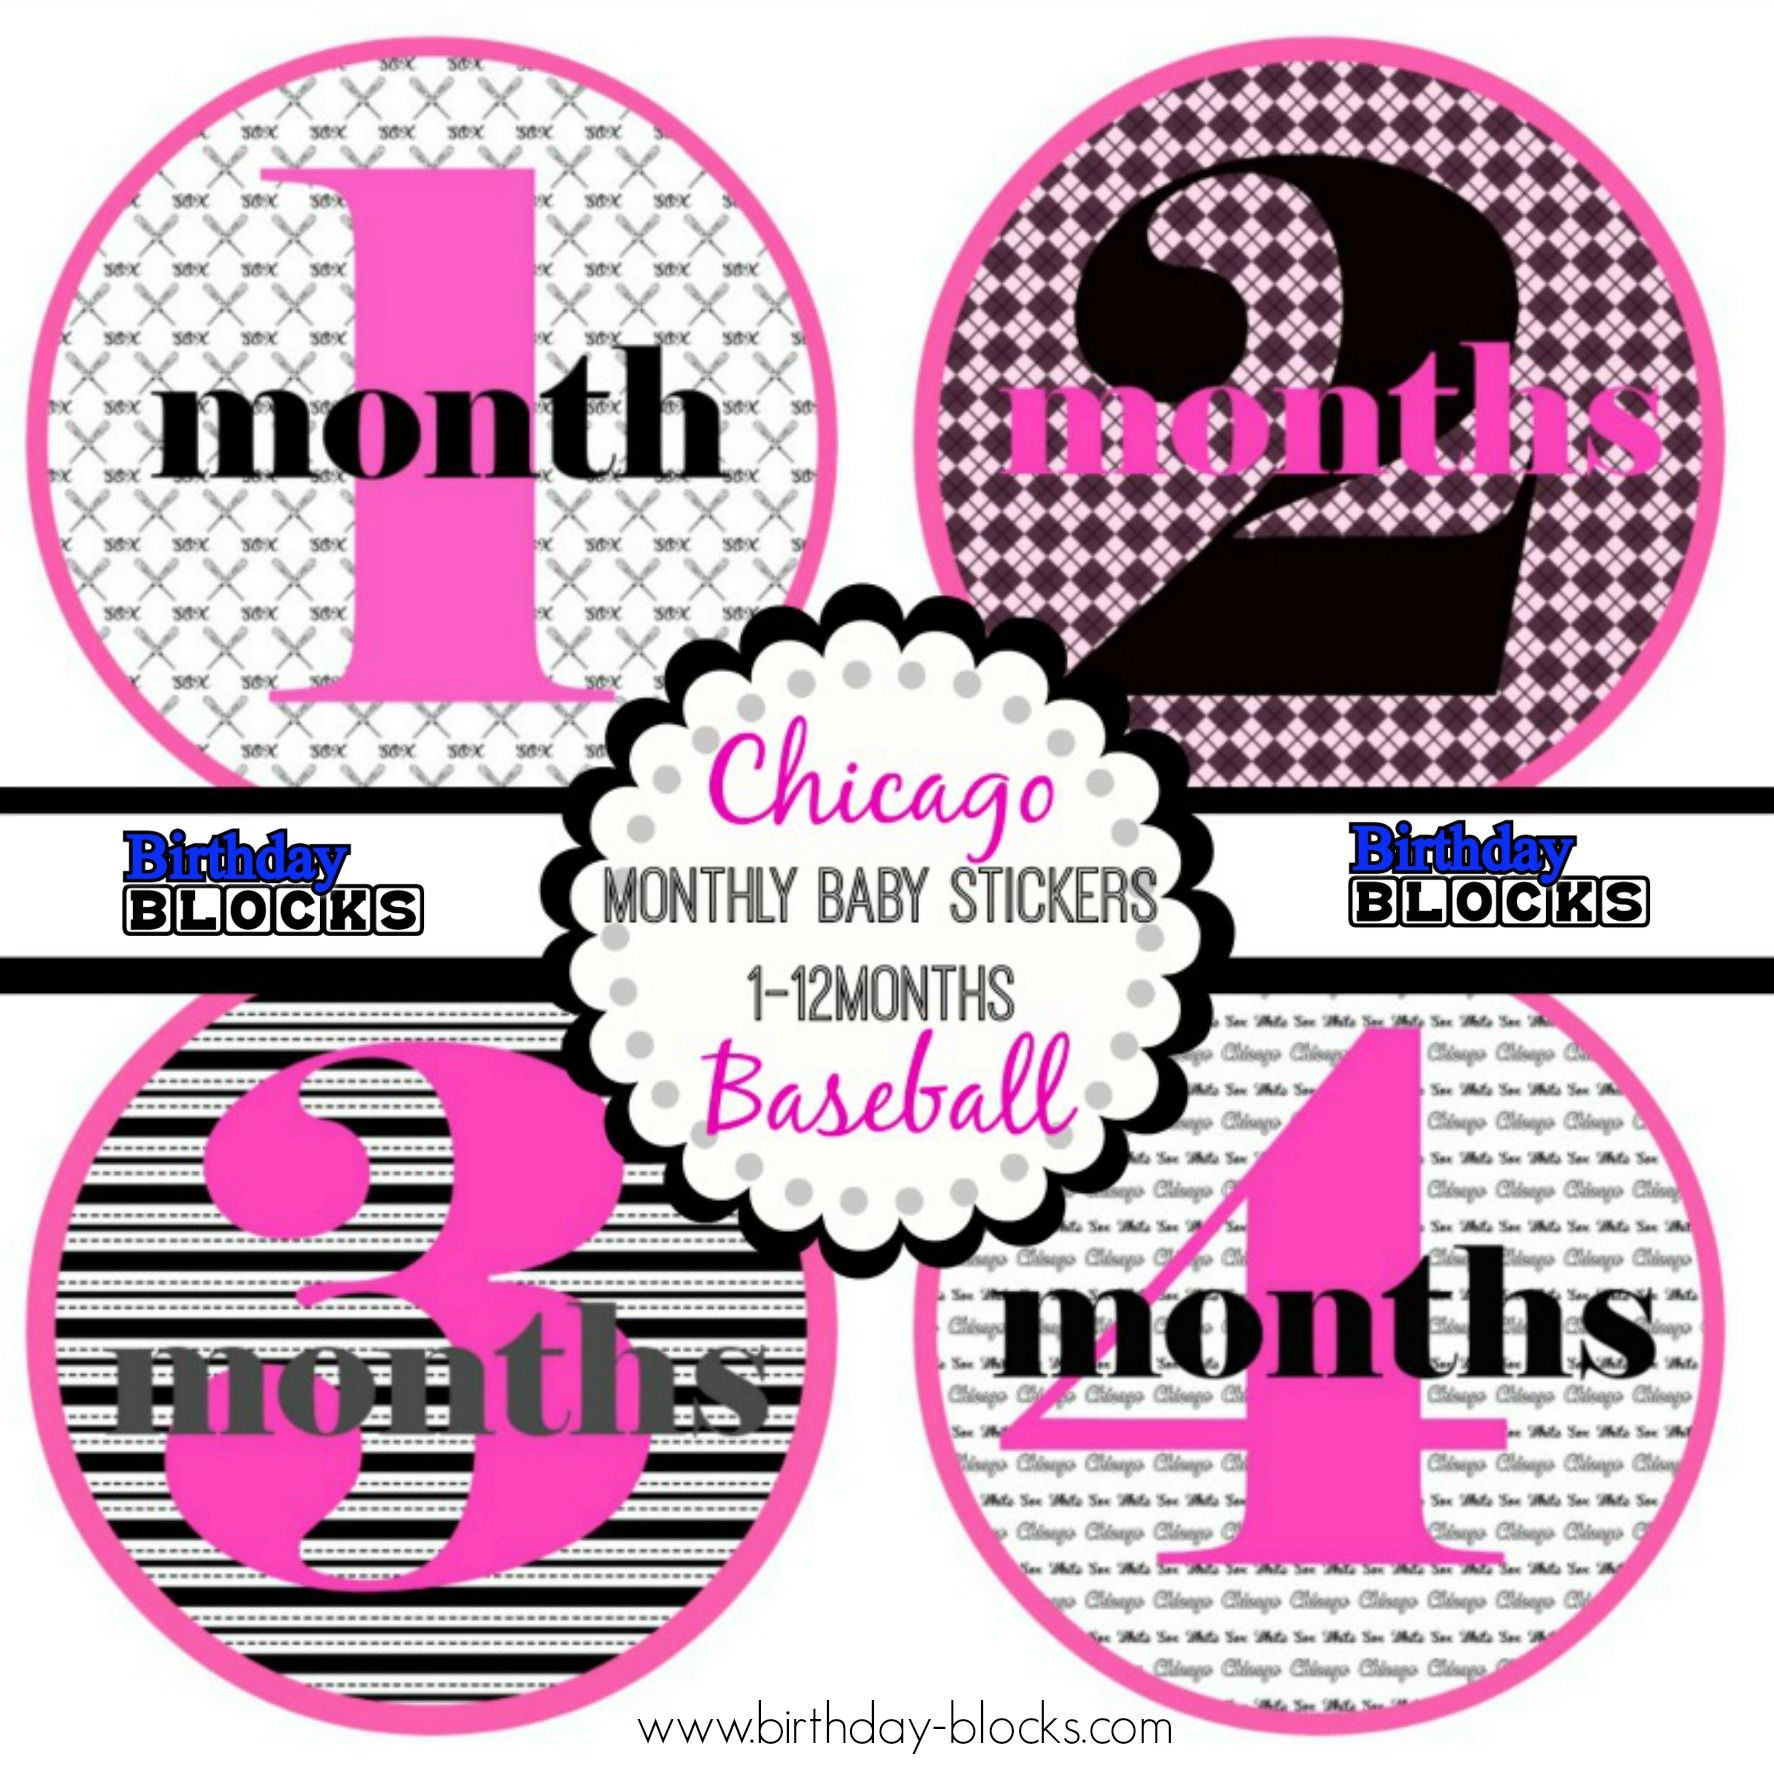 Babyshower Southside Chicago Baseball Monthly Photo Stickers, Girl